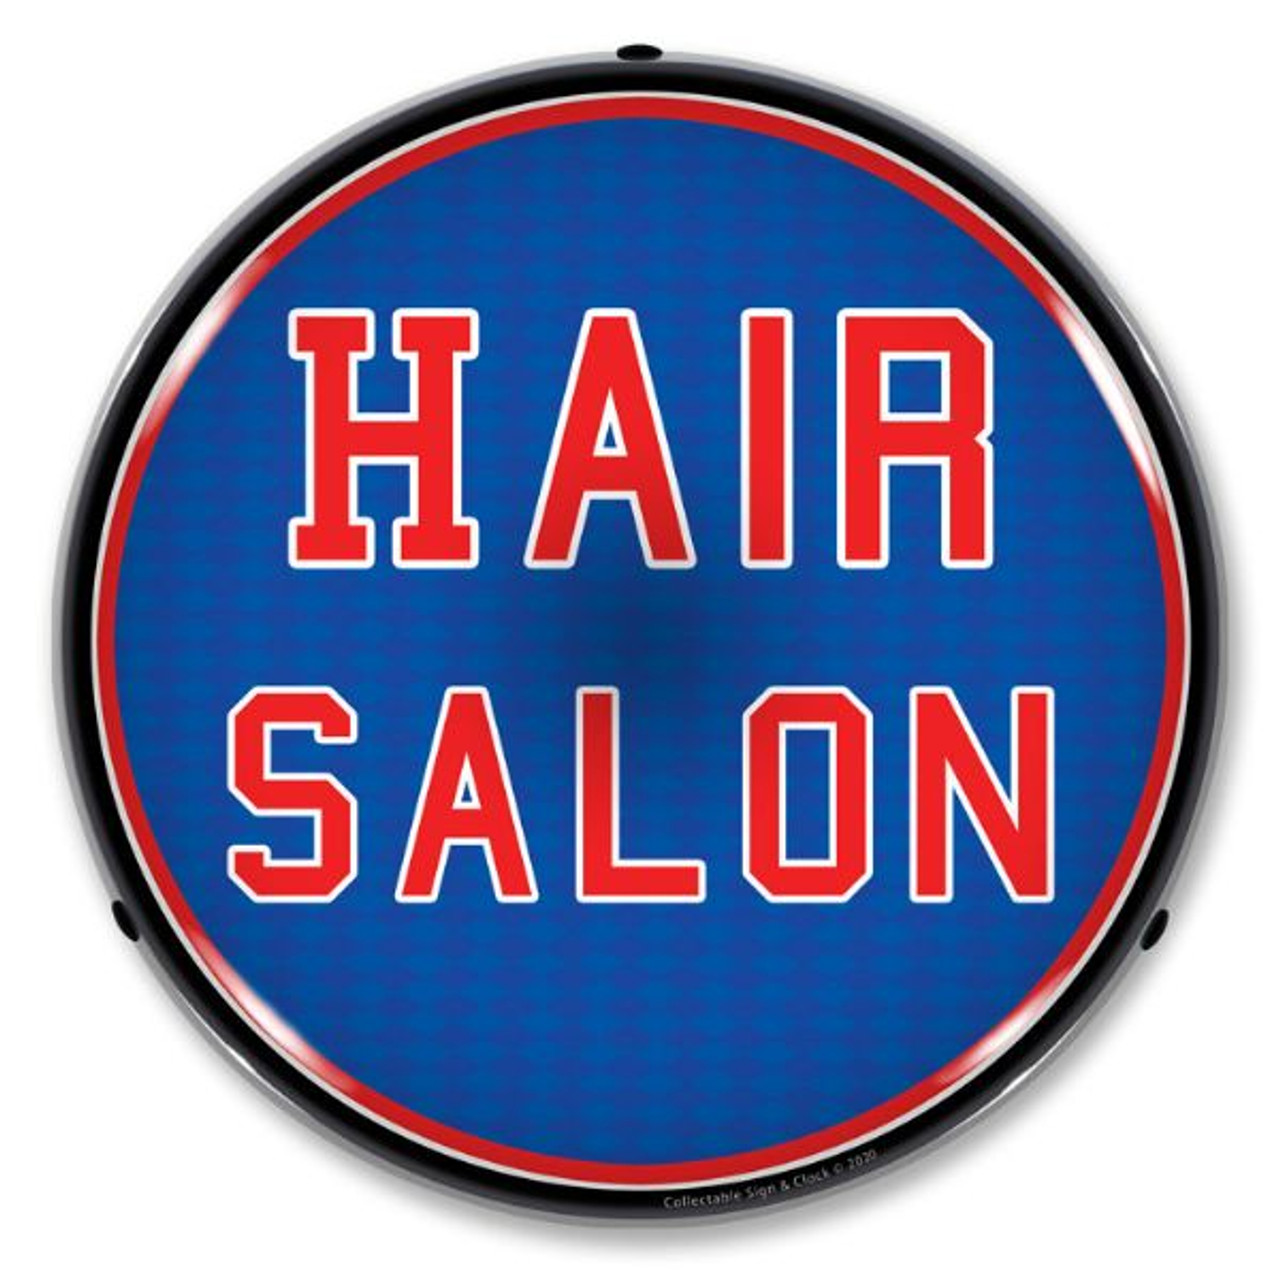 Hair Salon LED Lighted Business Sign 14 x 14 Inches